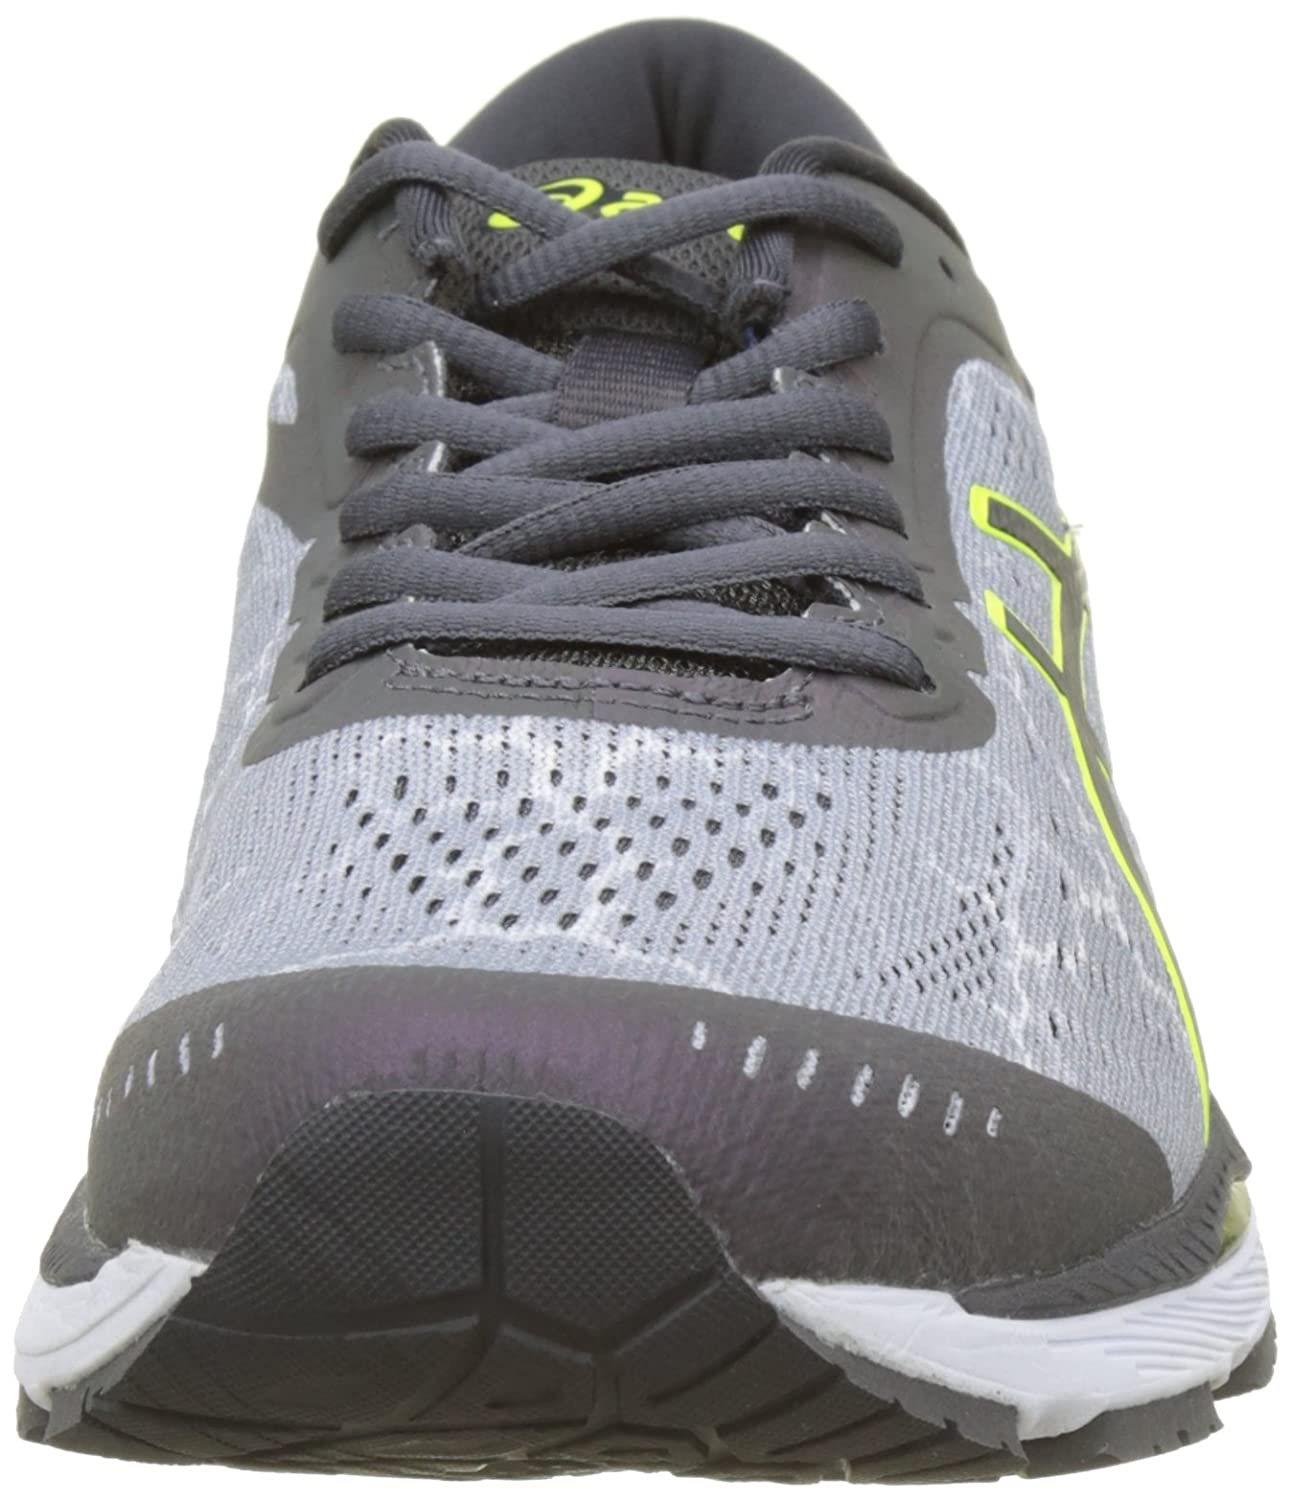 Asics Kayano 24 Mens Amazon LmWu3